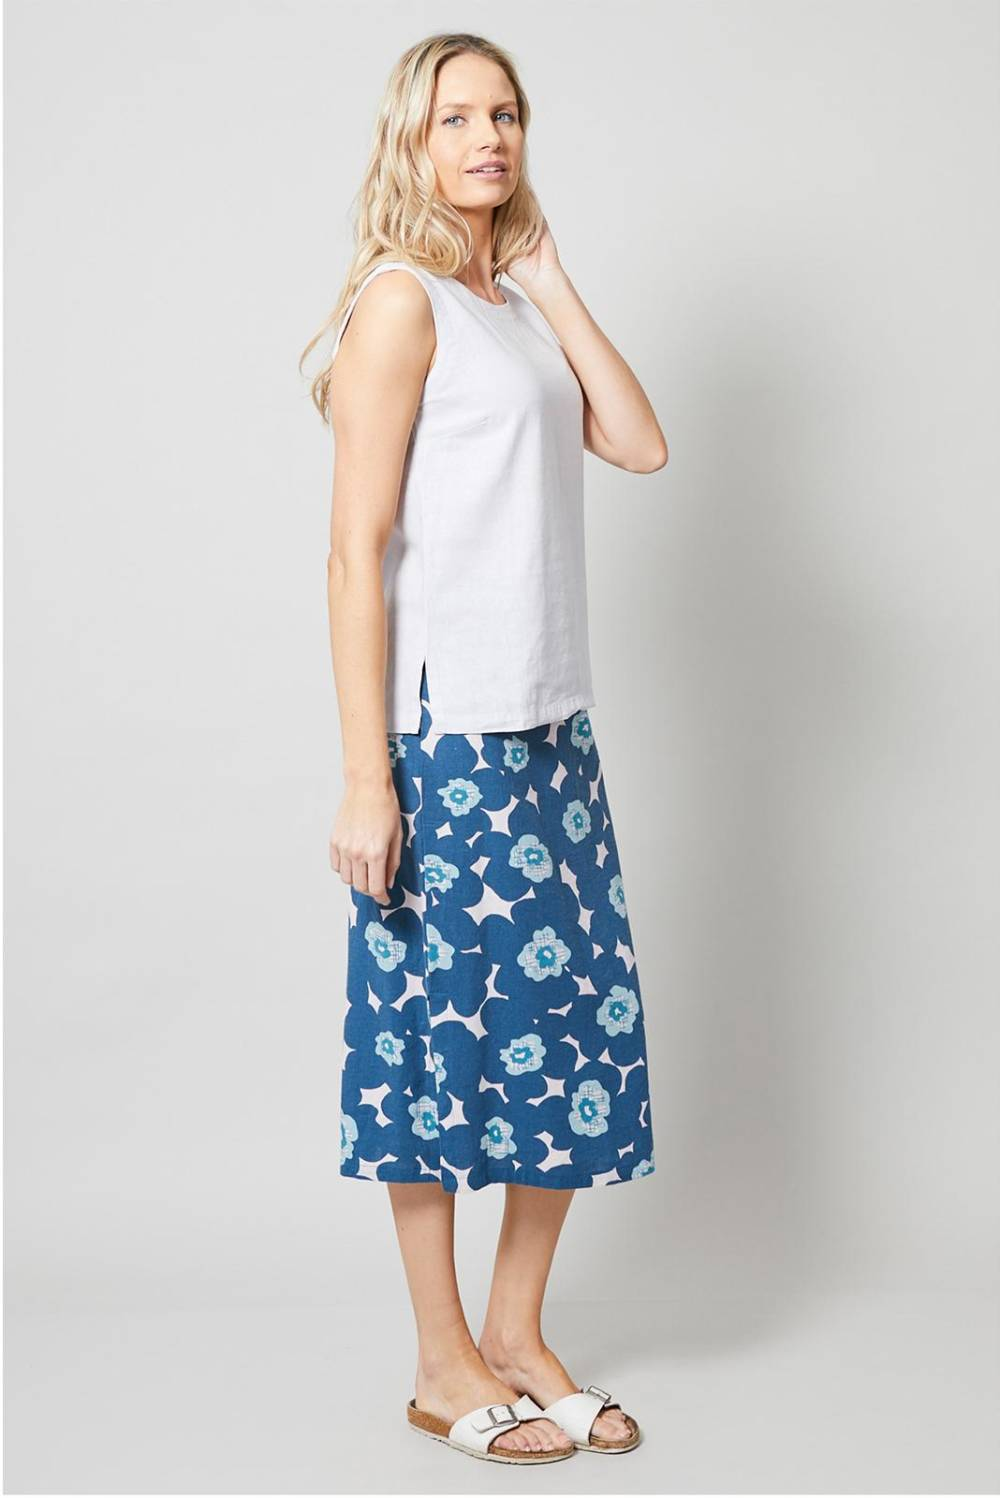 Midi Skirt Modern Floral Lily and Me Katie Kerr Women's Clothing